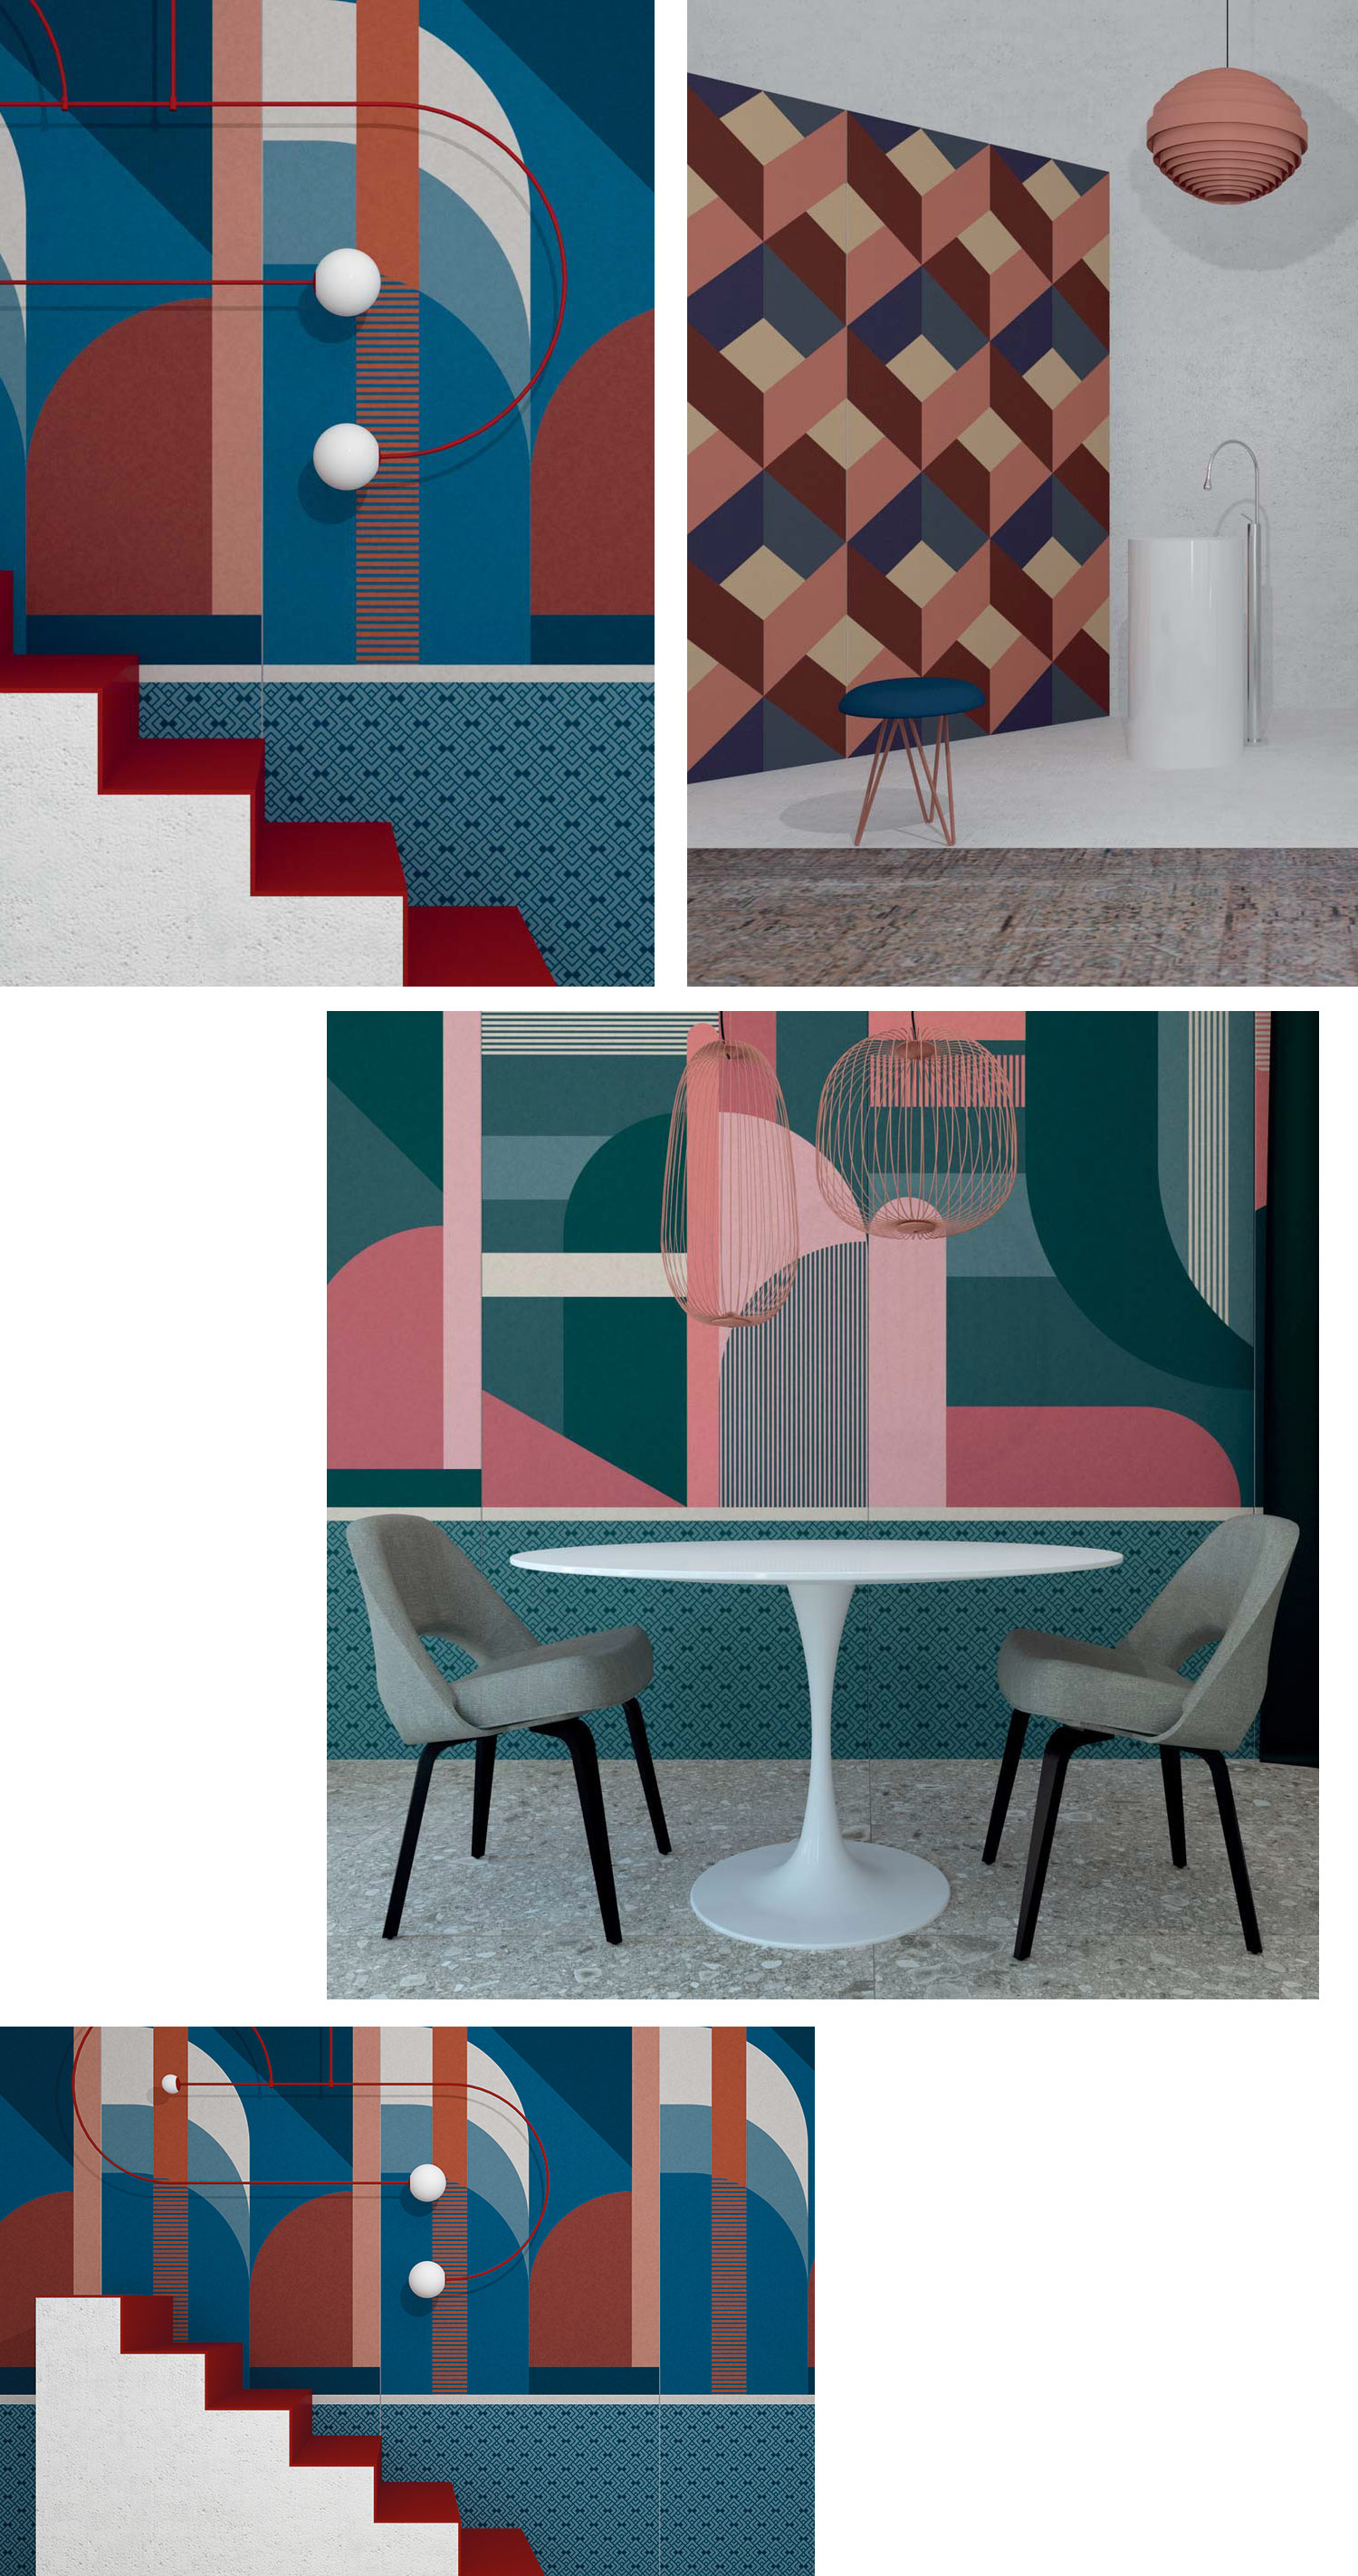 Tile trends for 2019 Ornamenta - www.authenticinterior.com BLOG